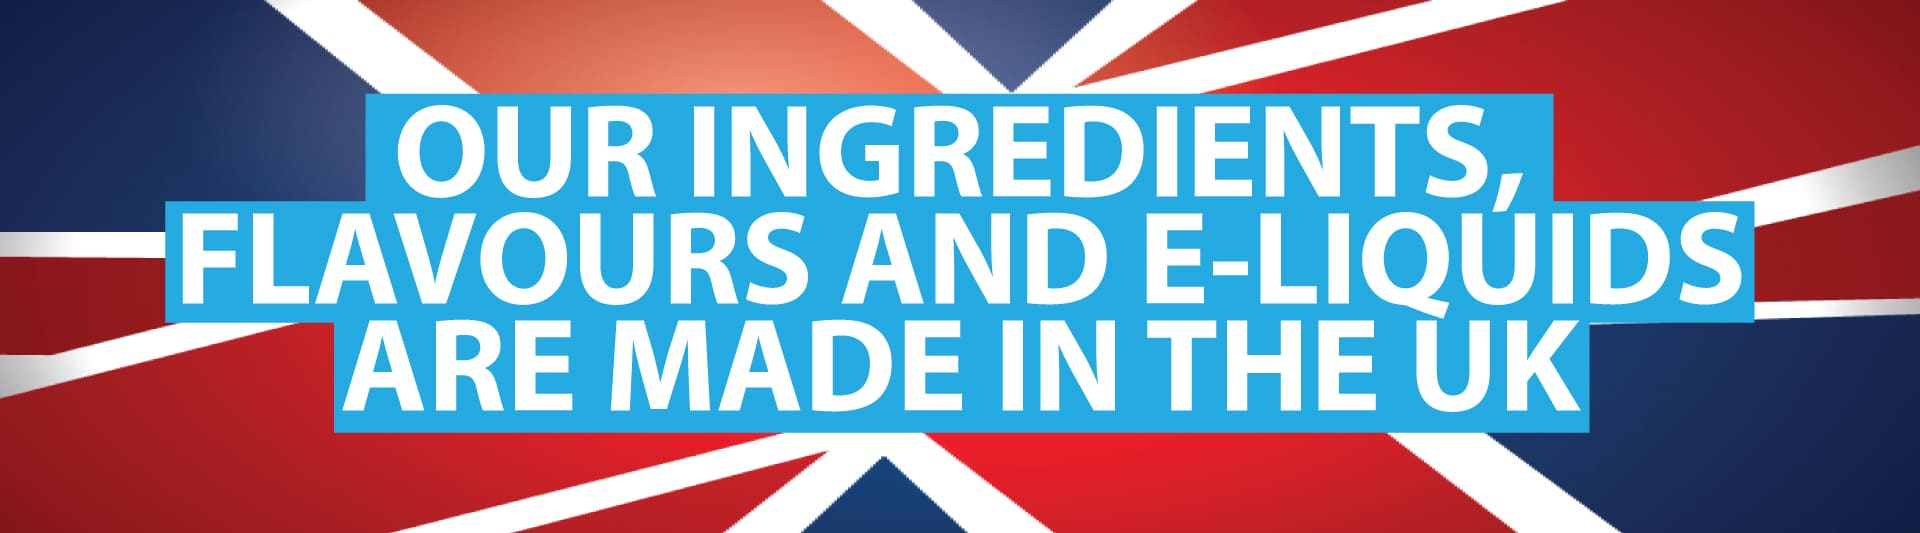 SMOKO E-Cigarette use the highest quality flavours and ingredients in our e-liquids that are Made in the UK